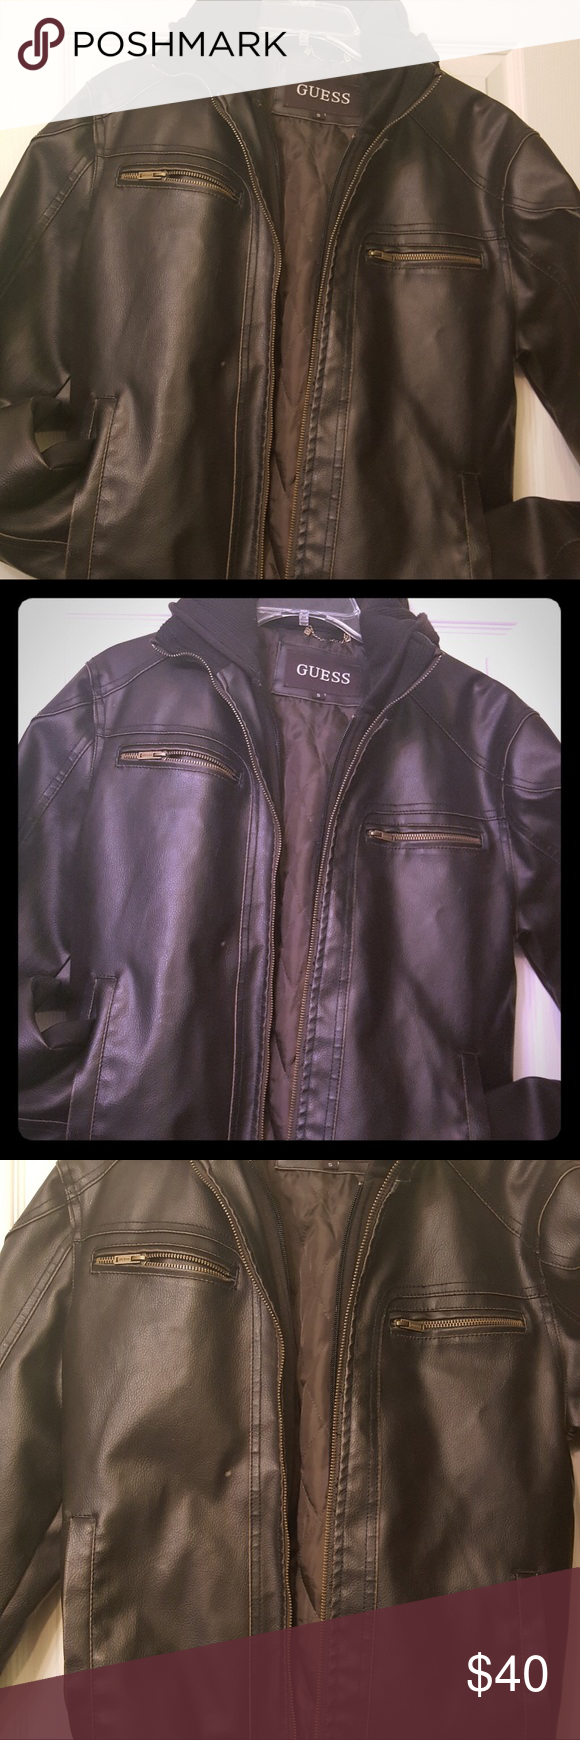 Guess Leather Jacket Jackets Leather Jacket Leather [ 1740 x 580 Pixel ]